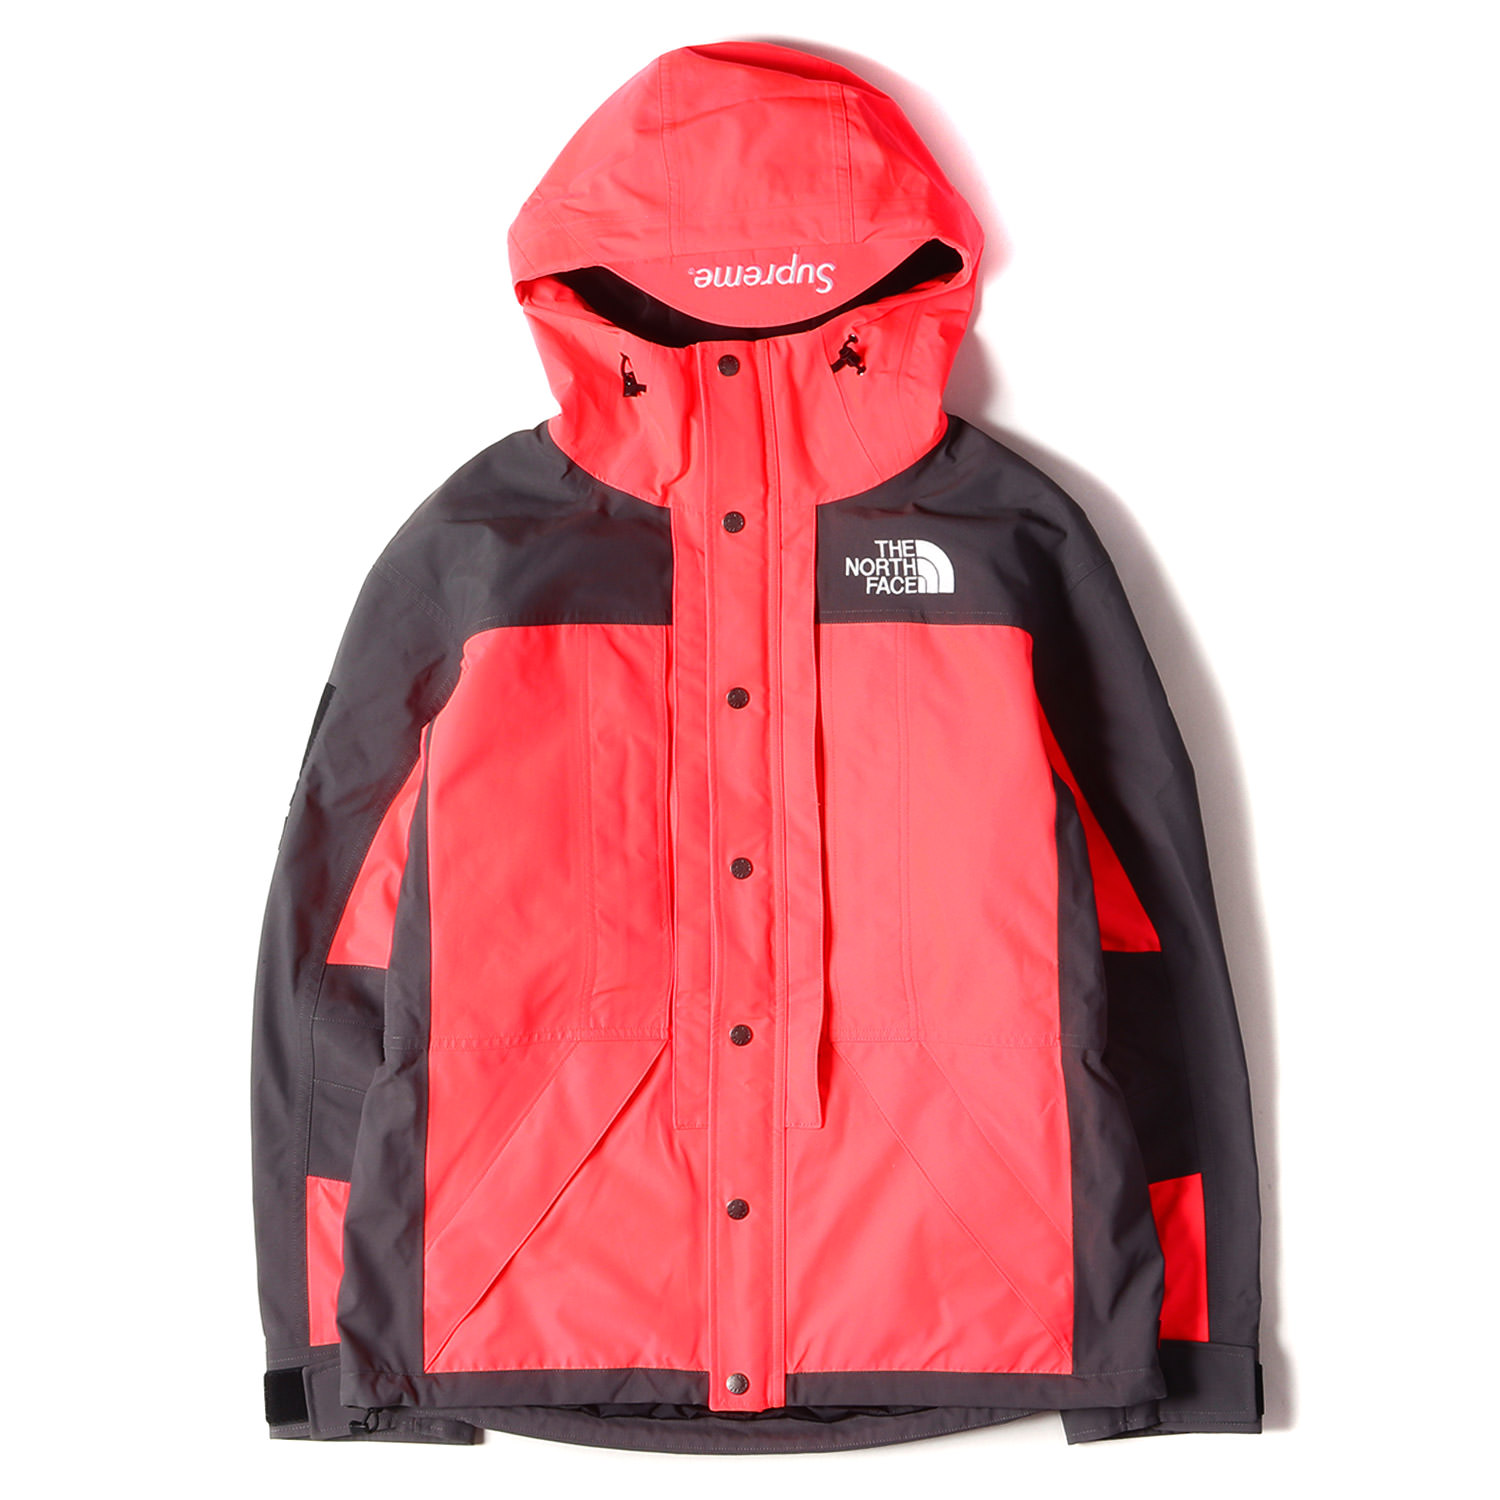 20SS ×THE NORTH FACE RTG GORE-TEXベスト付きジャケット(Jacket + Vest)